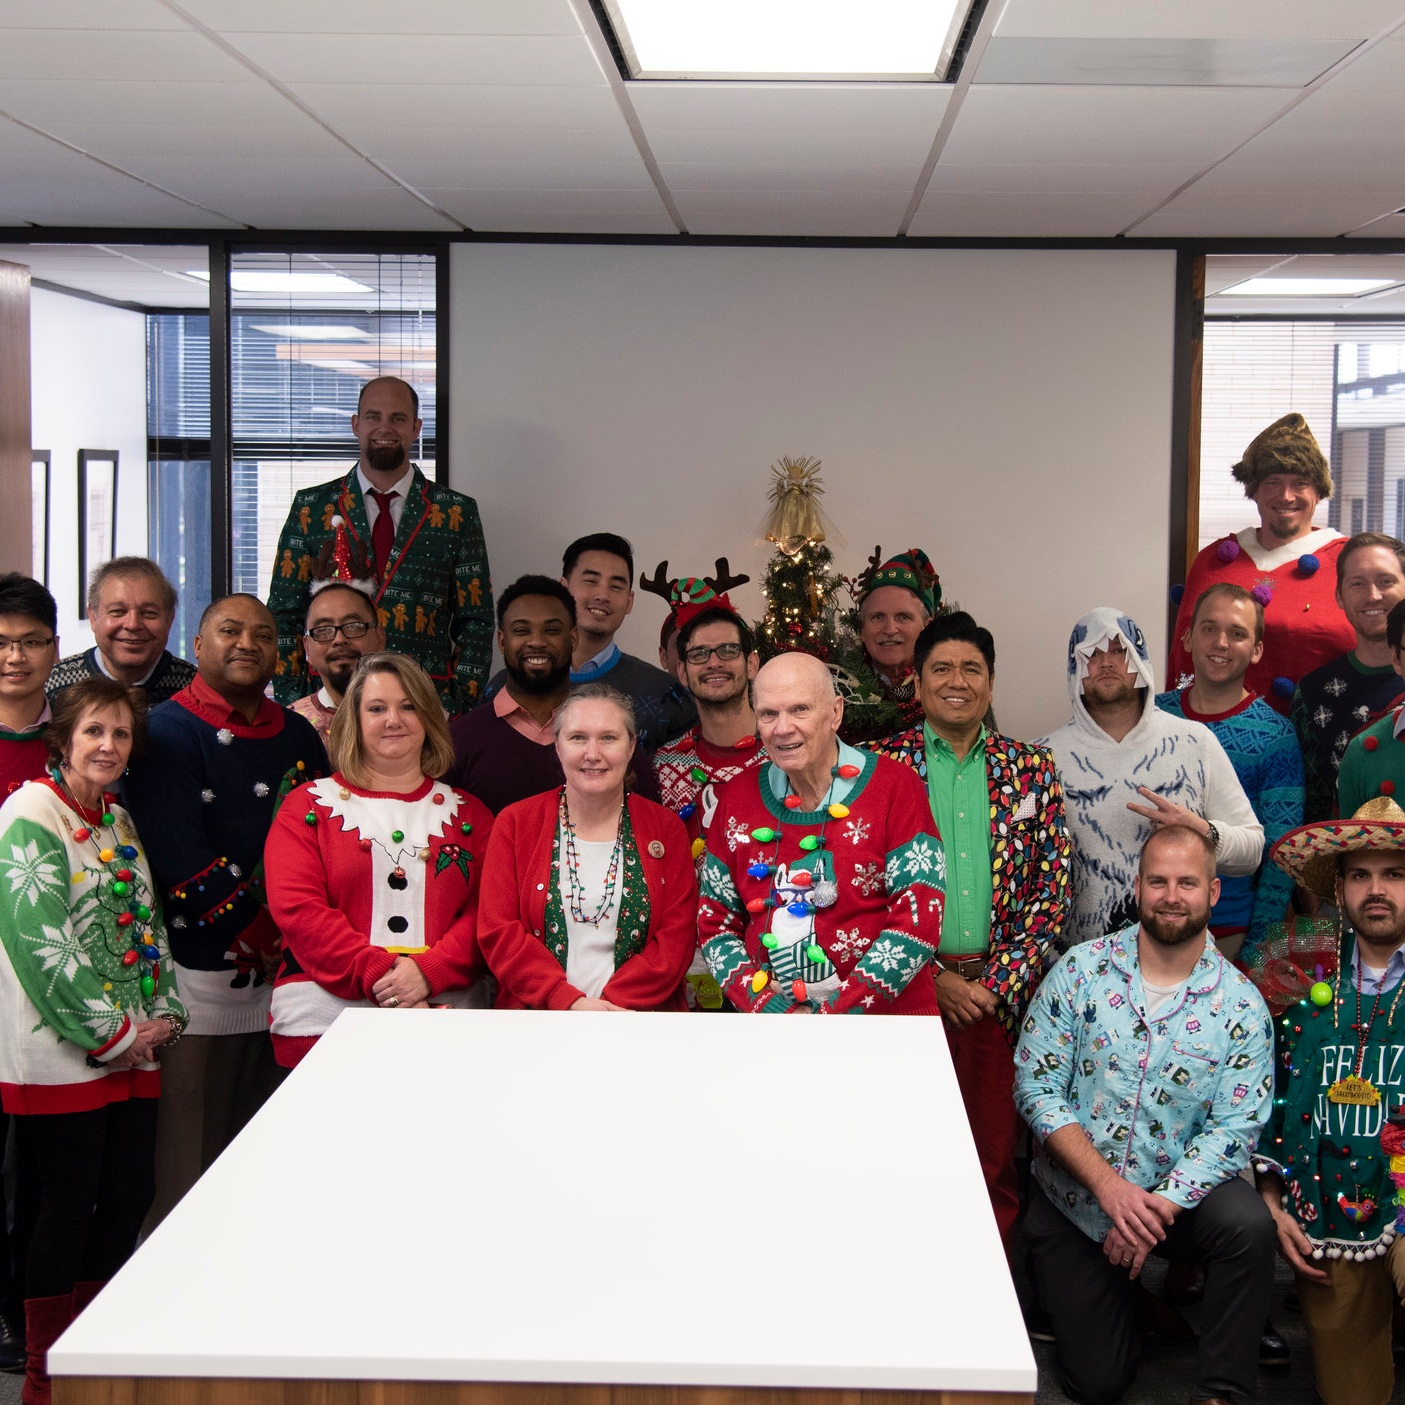 UGLY SWEATER CONTEST 2018 - Our annual ugly sweater/office Christmas party was great! The sweaters were ugly, the food was delicious, and the white elephant gifts brought some surprises.